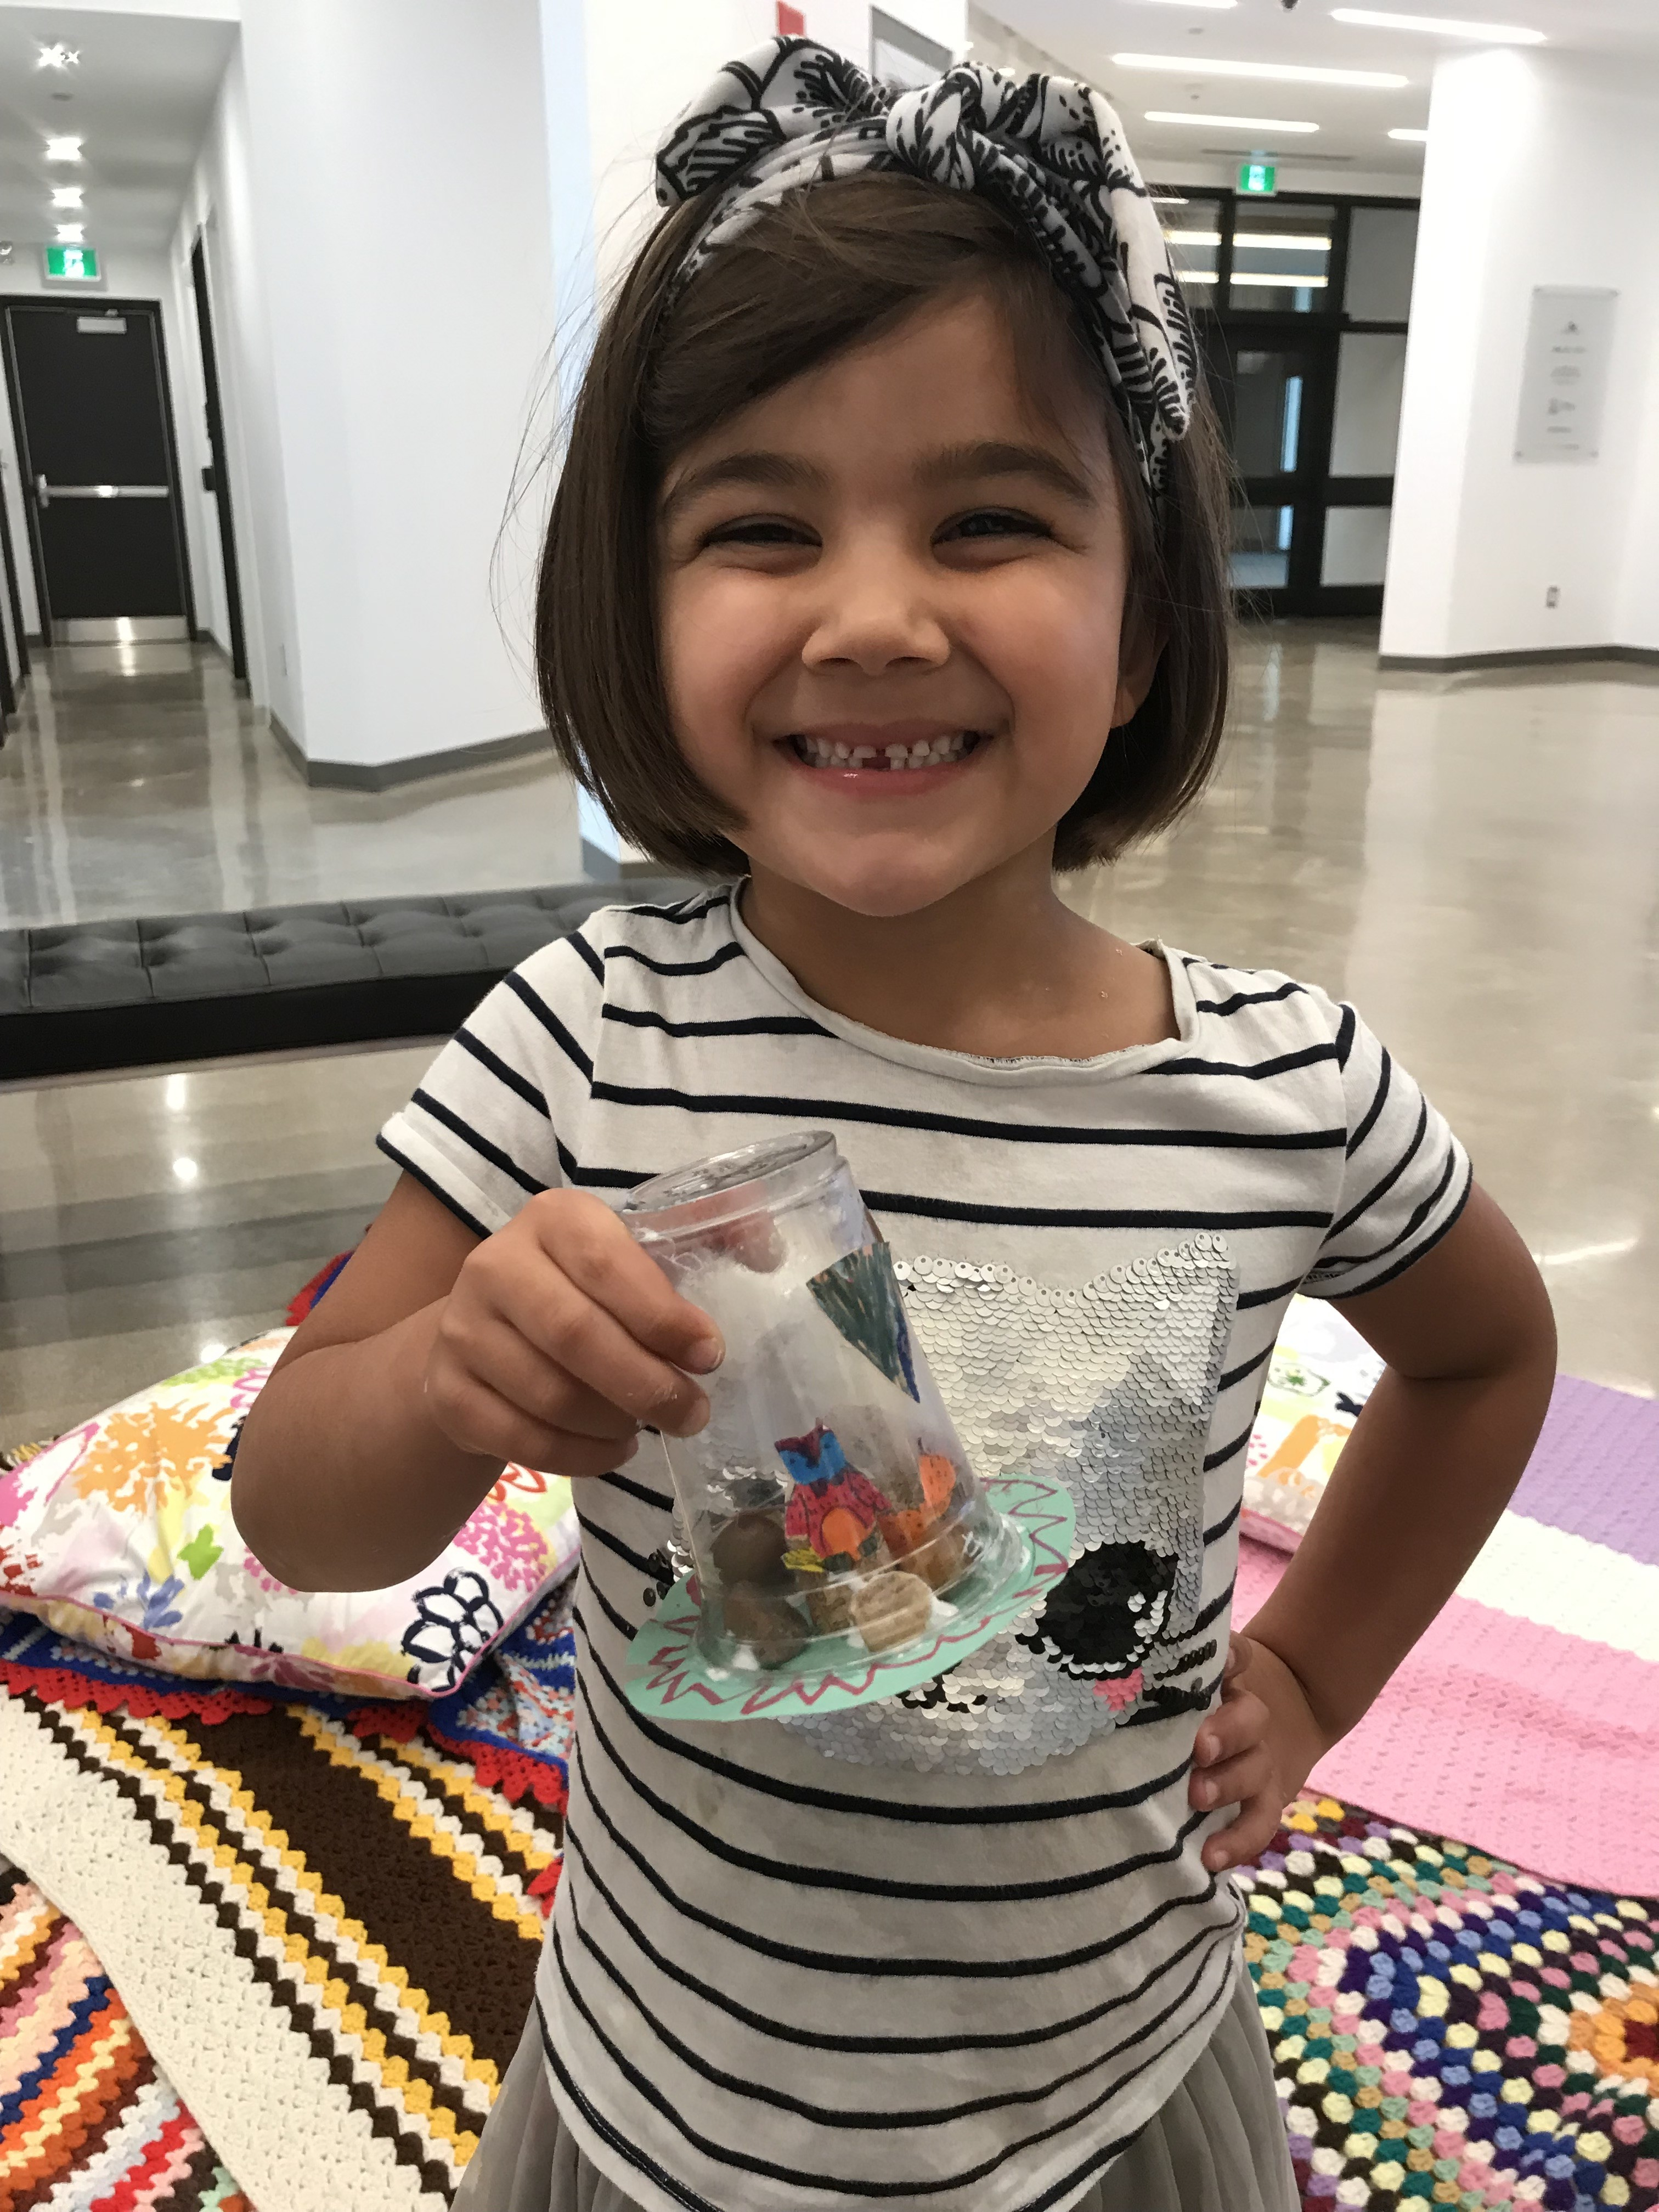 A young girl smiling as she shows off a mini terrarium made from found materials at Family Sunday